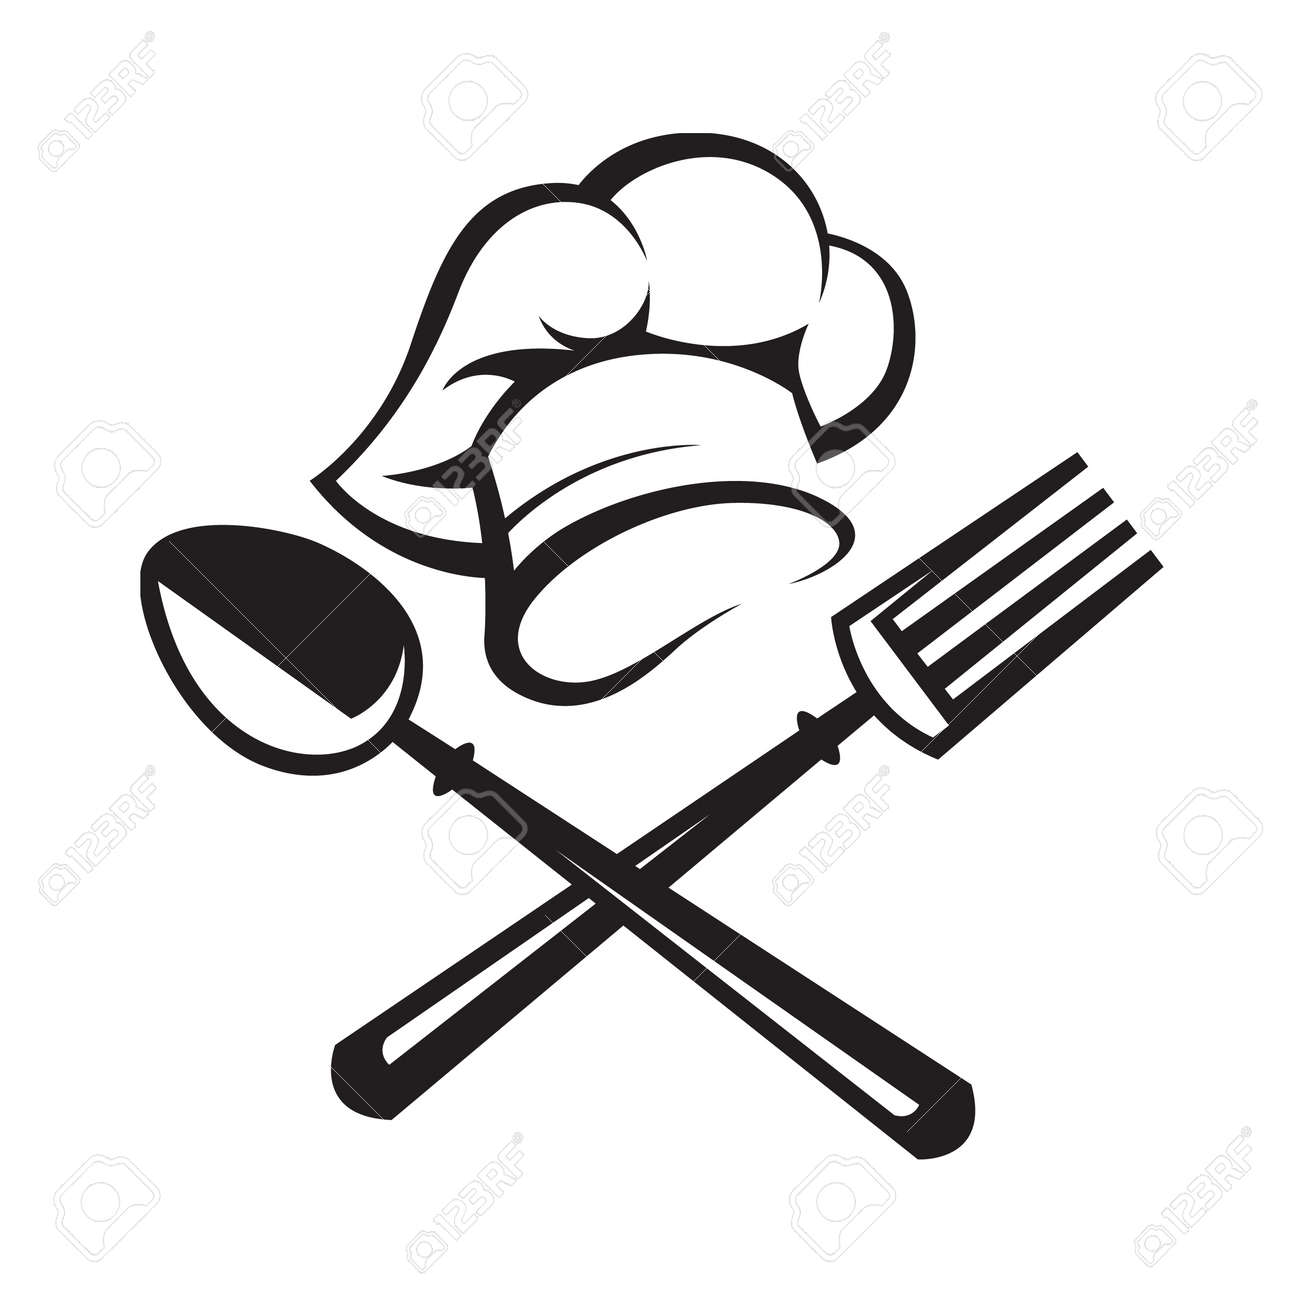 Black Illustration Of Spoon, Fork And Chef Hat Royalty Free Cliparts